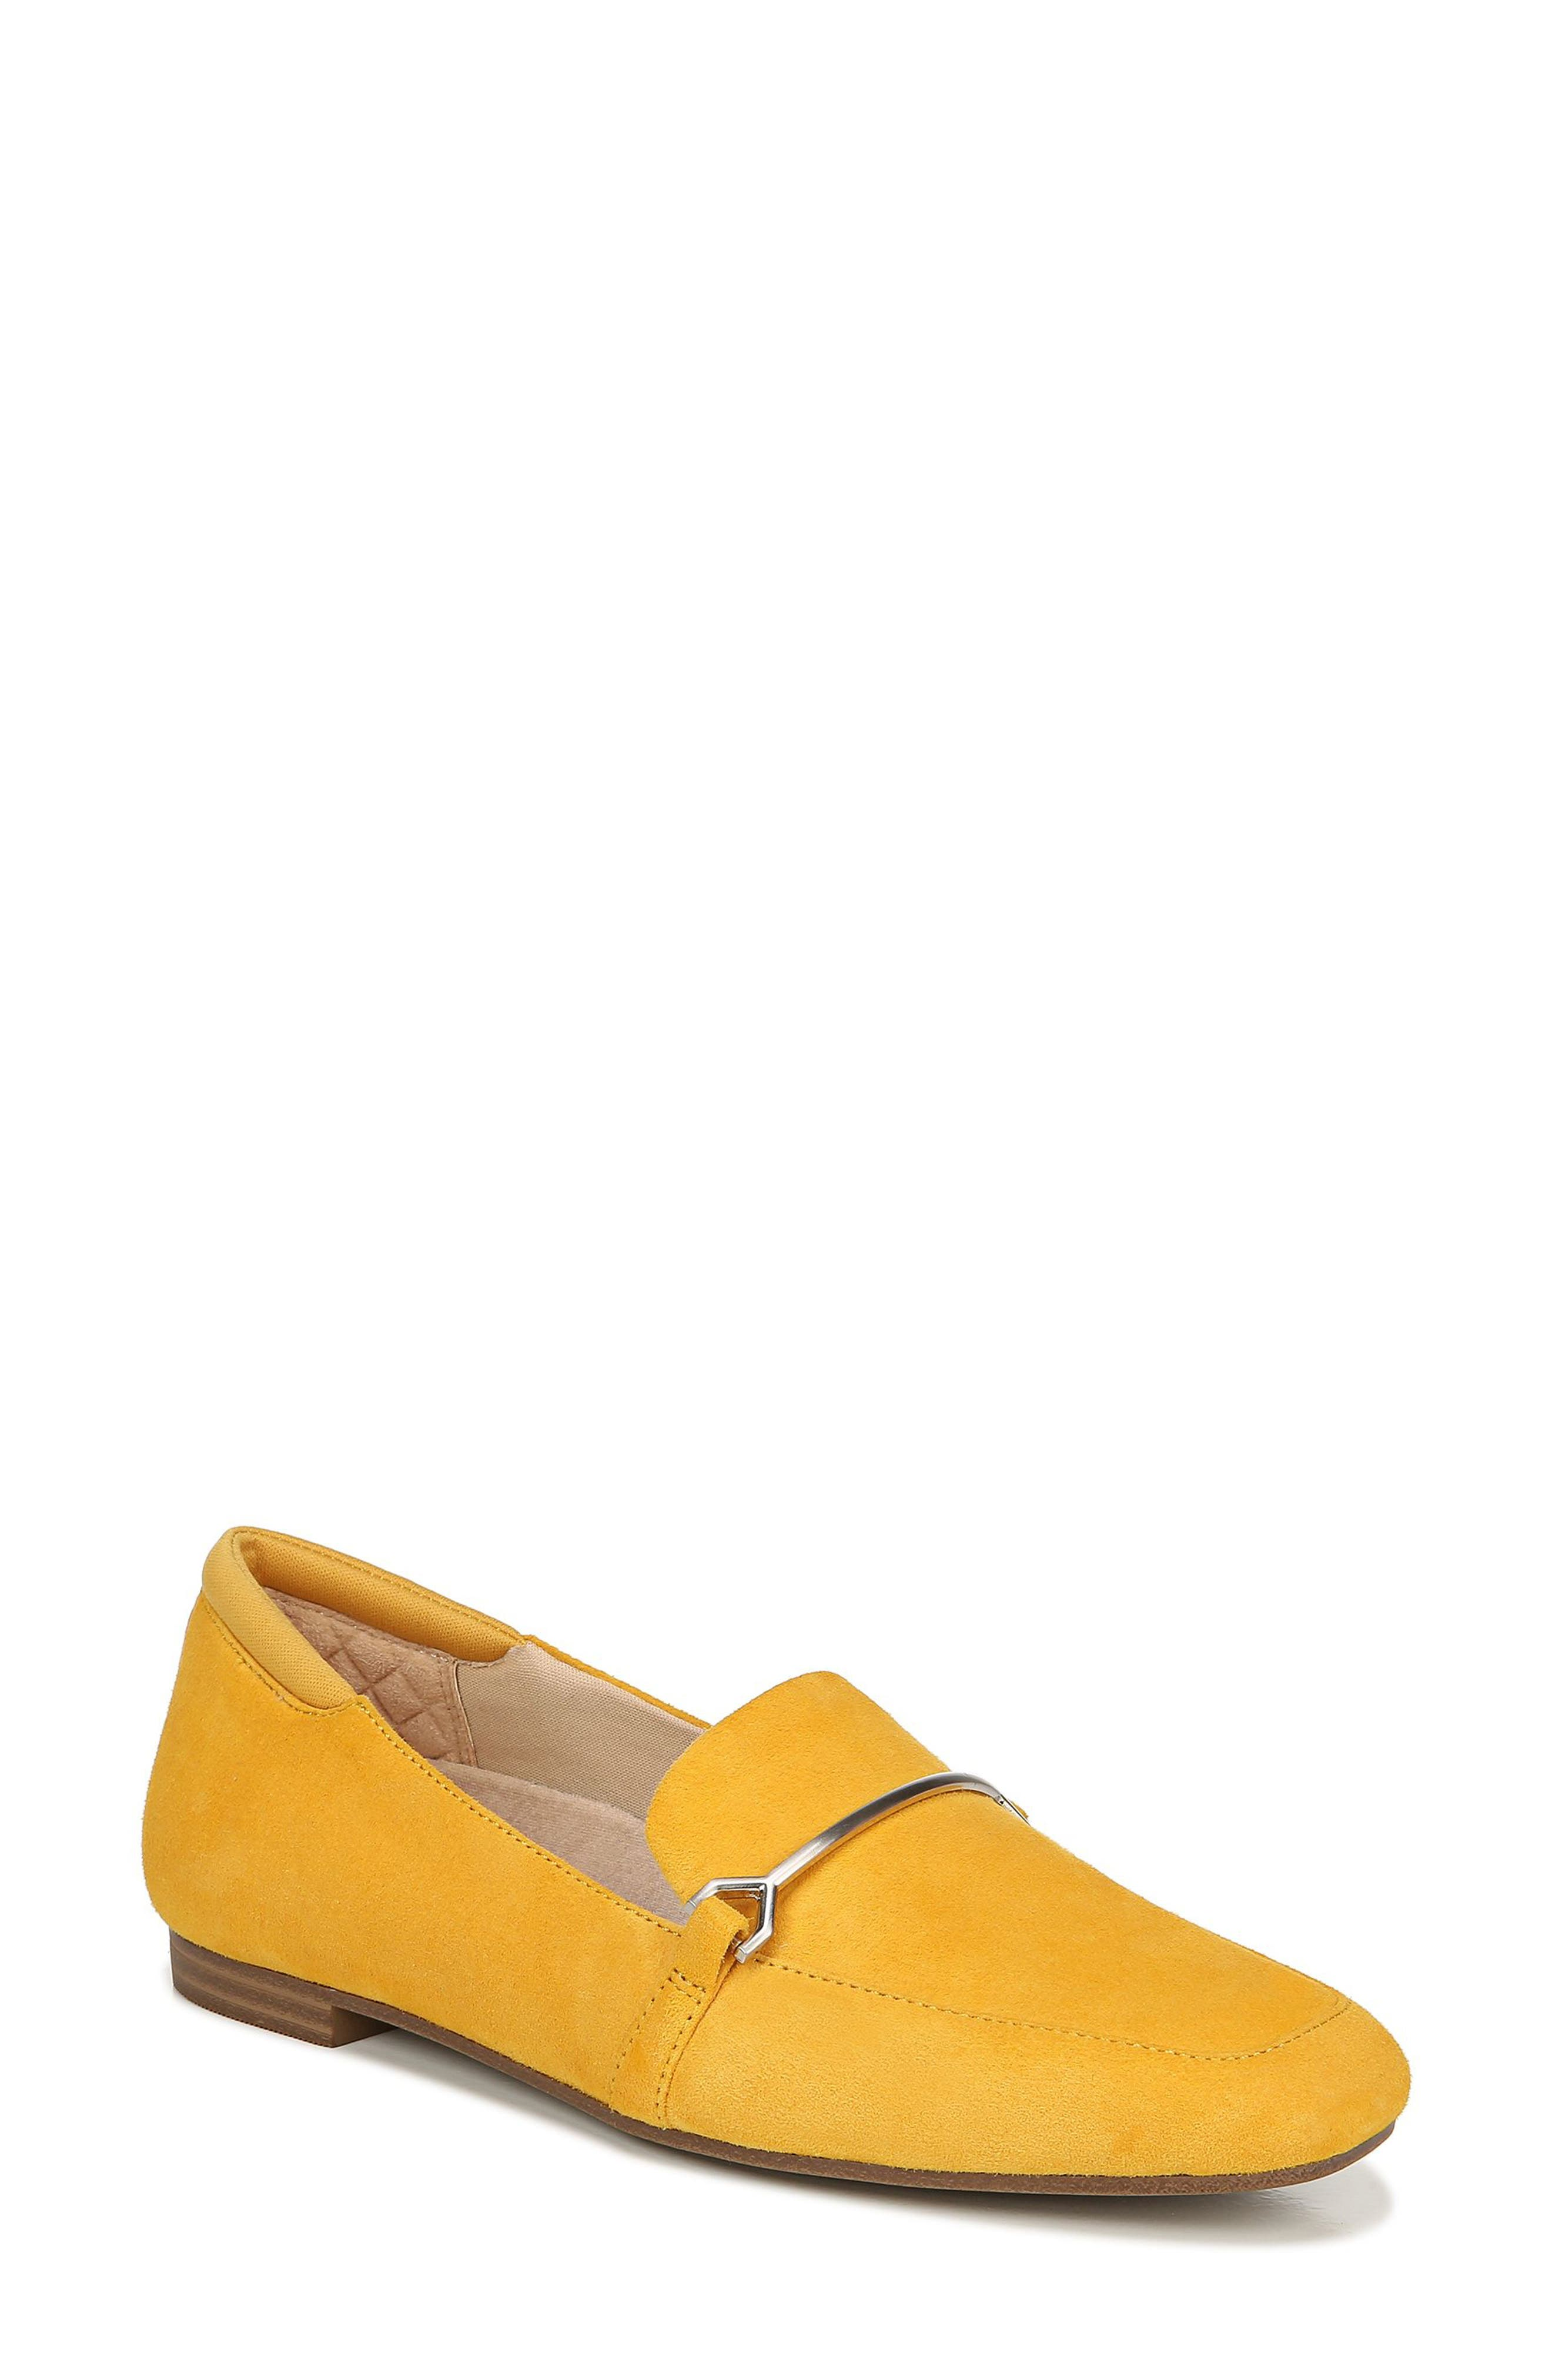 WOMANS LADIES GIRLS MUSTARD SLIP ON LOAFER SHOES